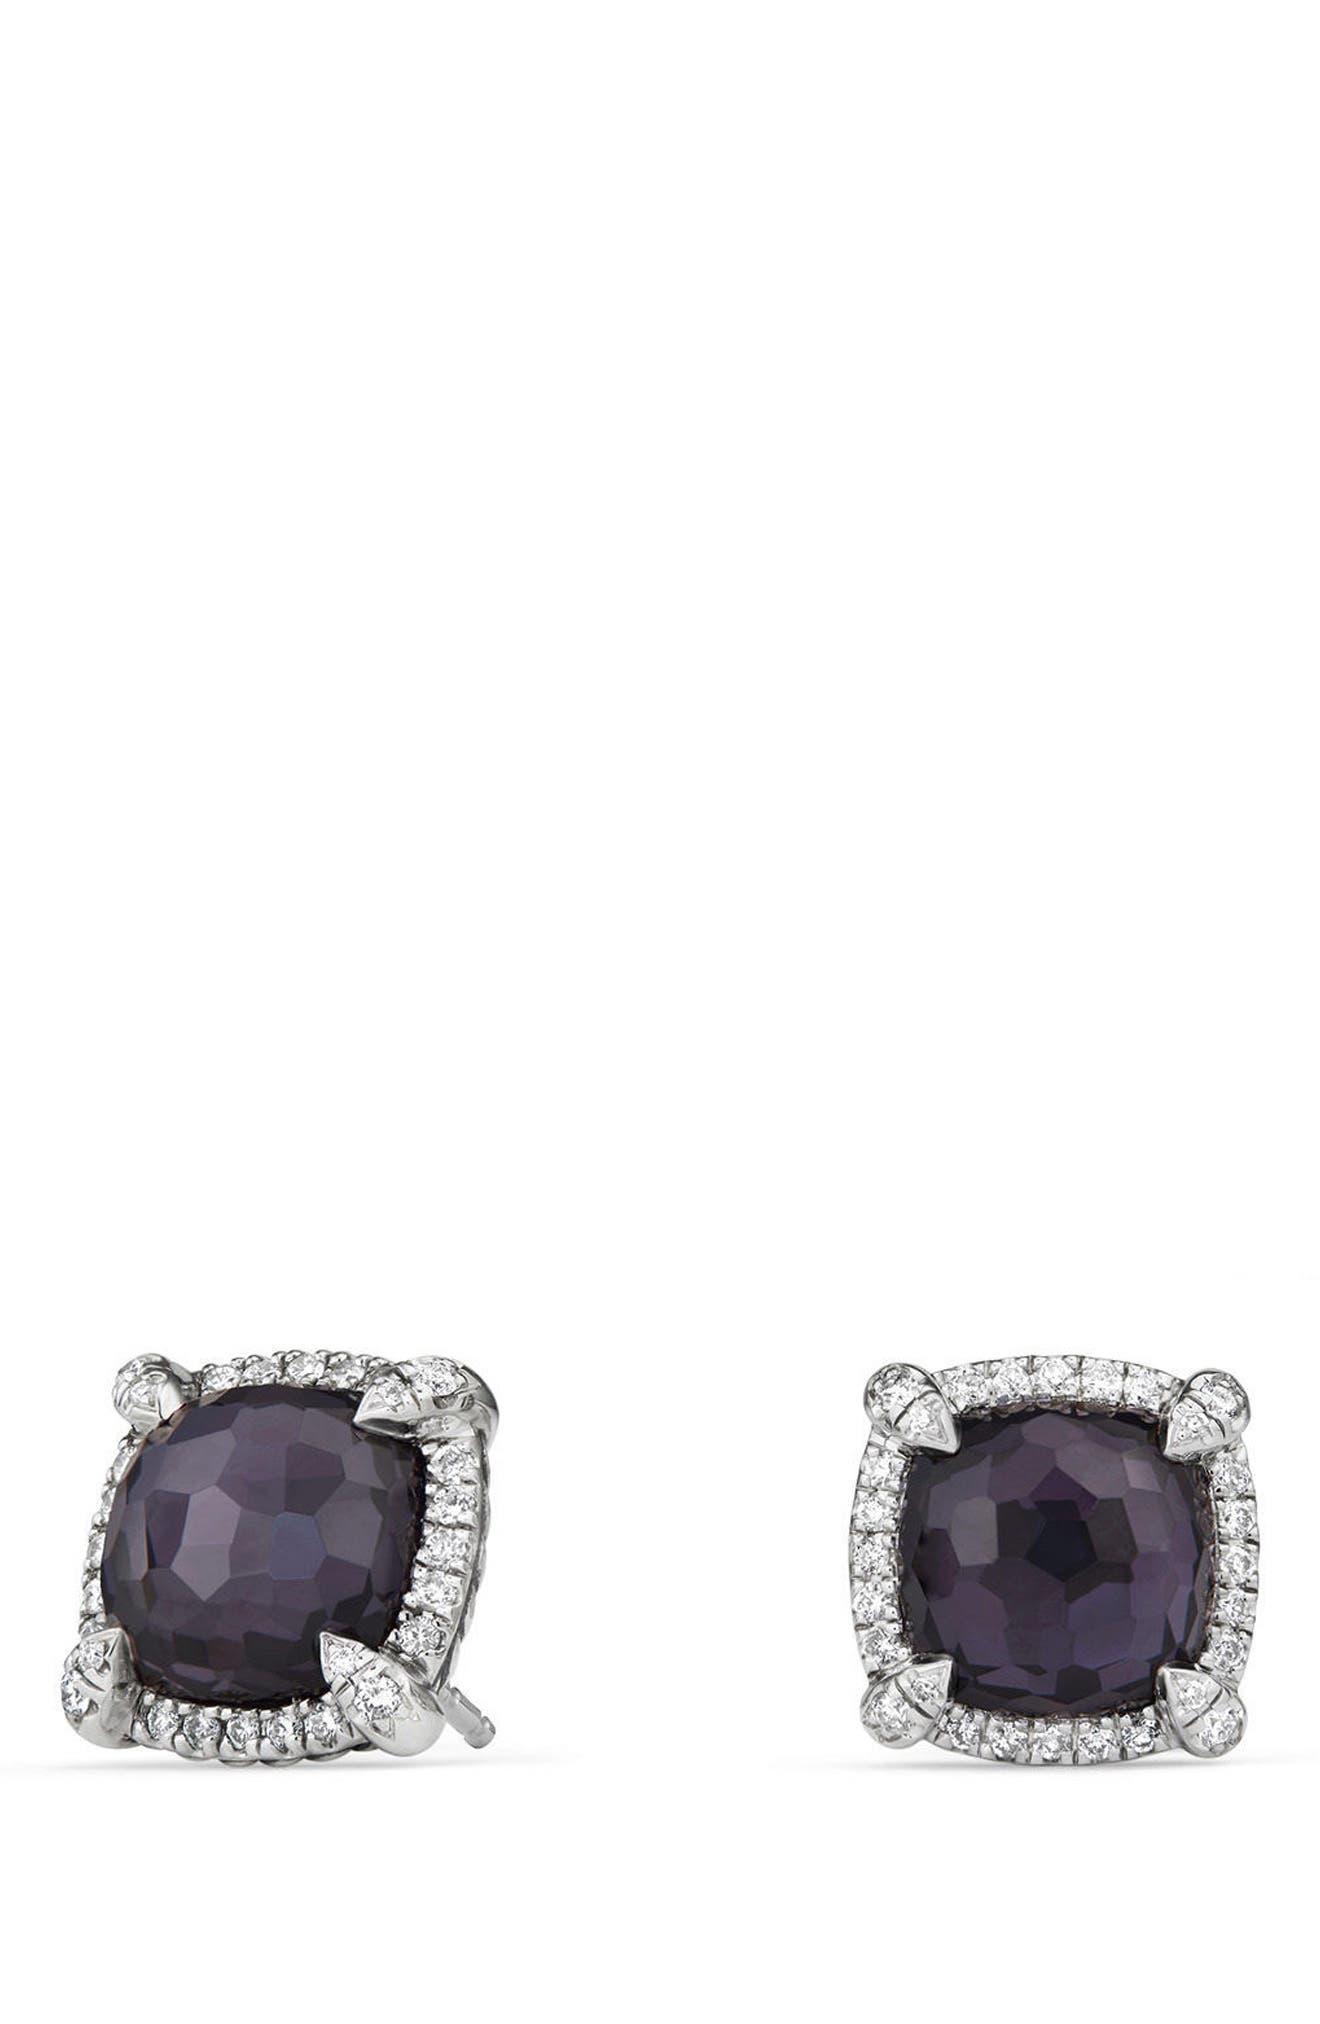 David Yurman Chatelaine Pavé Bezel Earring with Black Orchard and Diamonds, 9mm